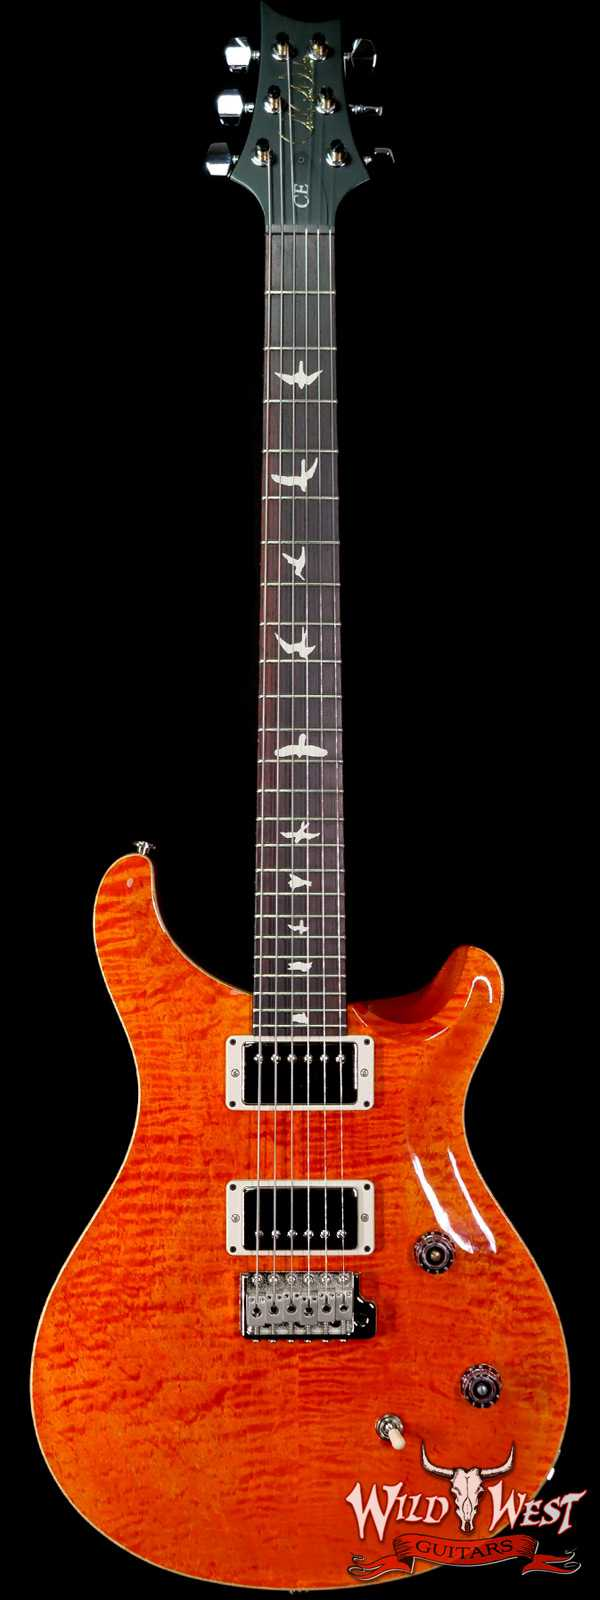 Paul Reed Smith PRS Wild West Guitars Special Run Flame Top Black Neck CE 24 Orange